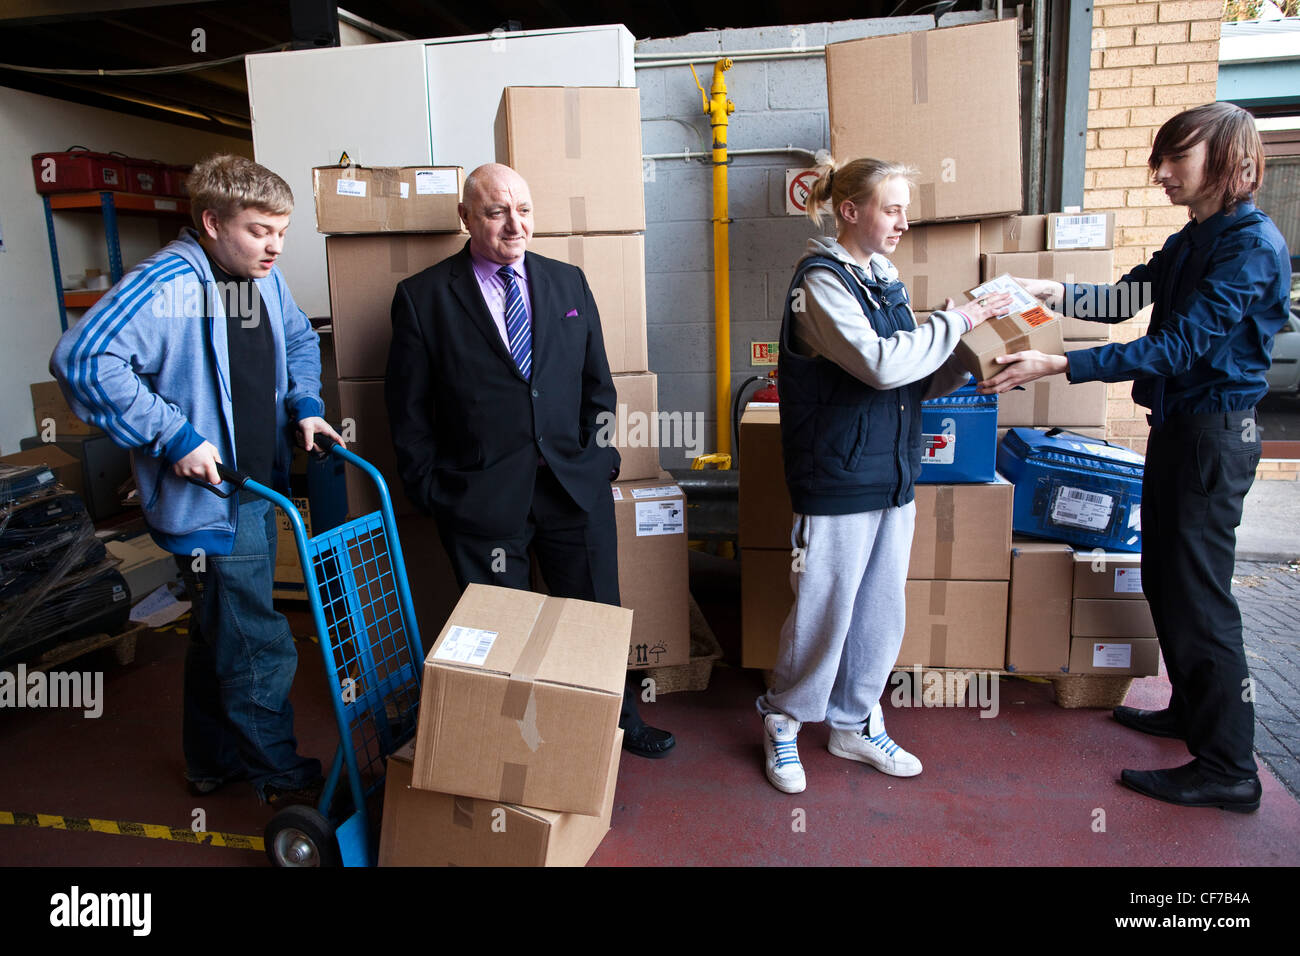 18 -24 year olds on 'Workfare' programme UK Government work experience scheme to give young jobseekers work - Stock Image